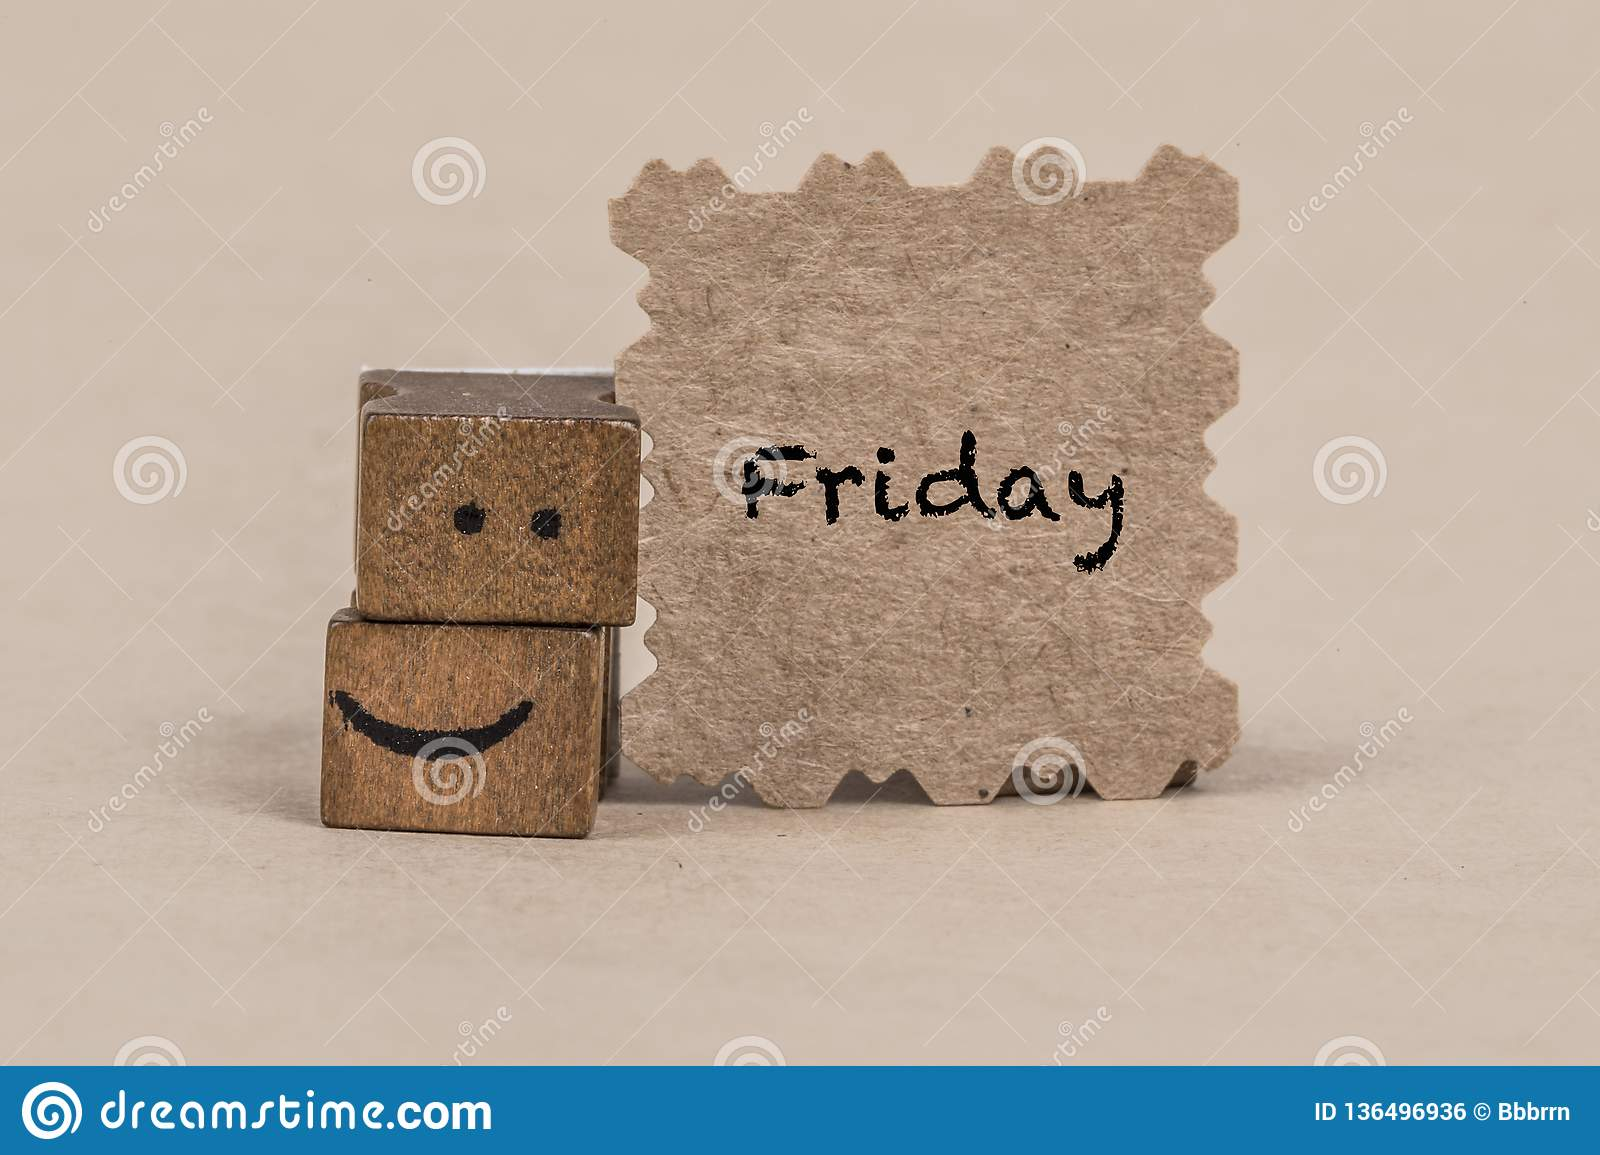 Template For Friday With A Smiley Icon Stock Photo Image Of Idea